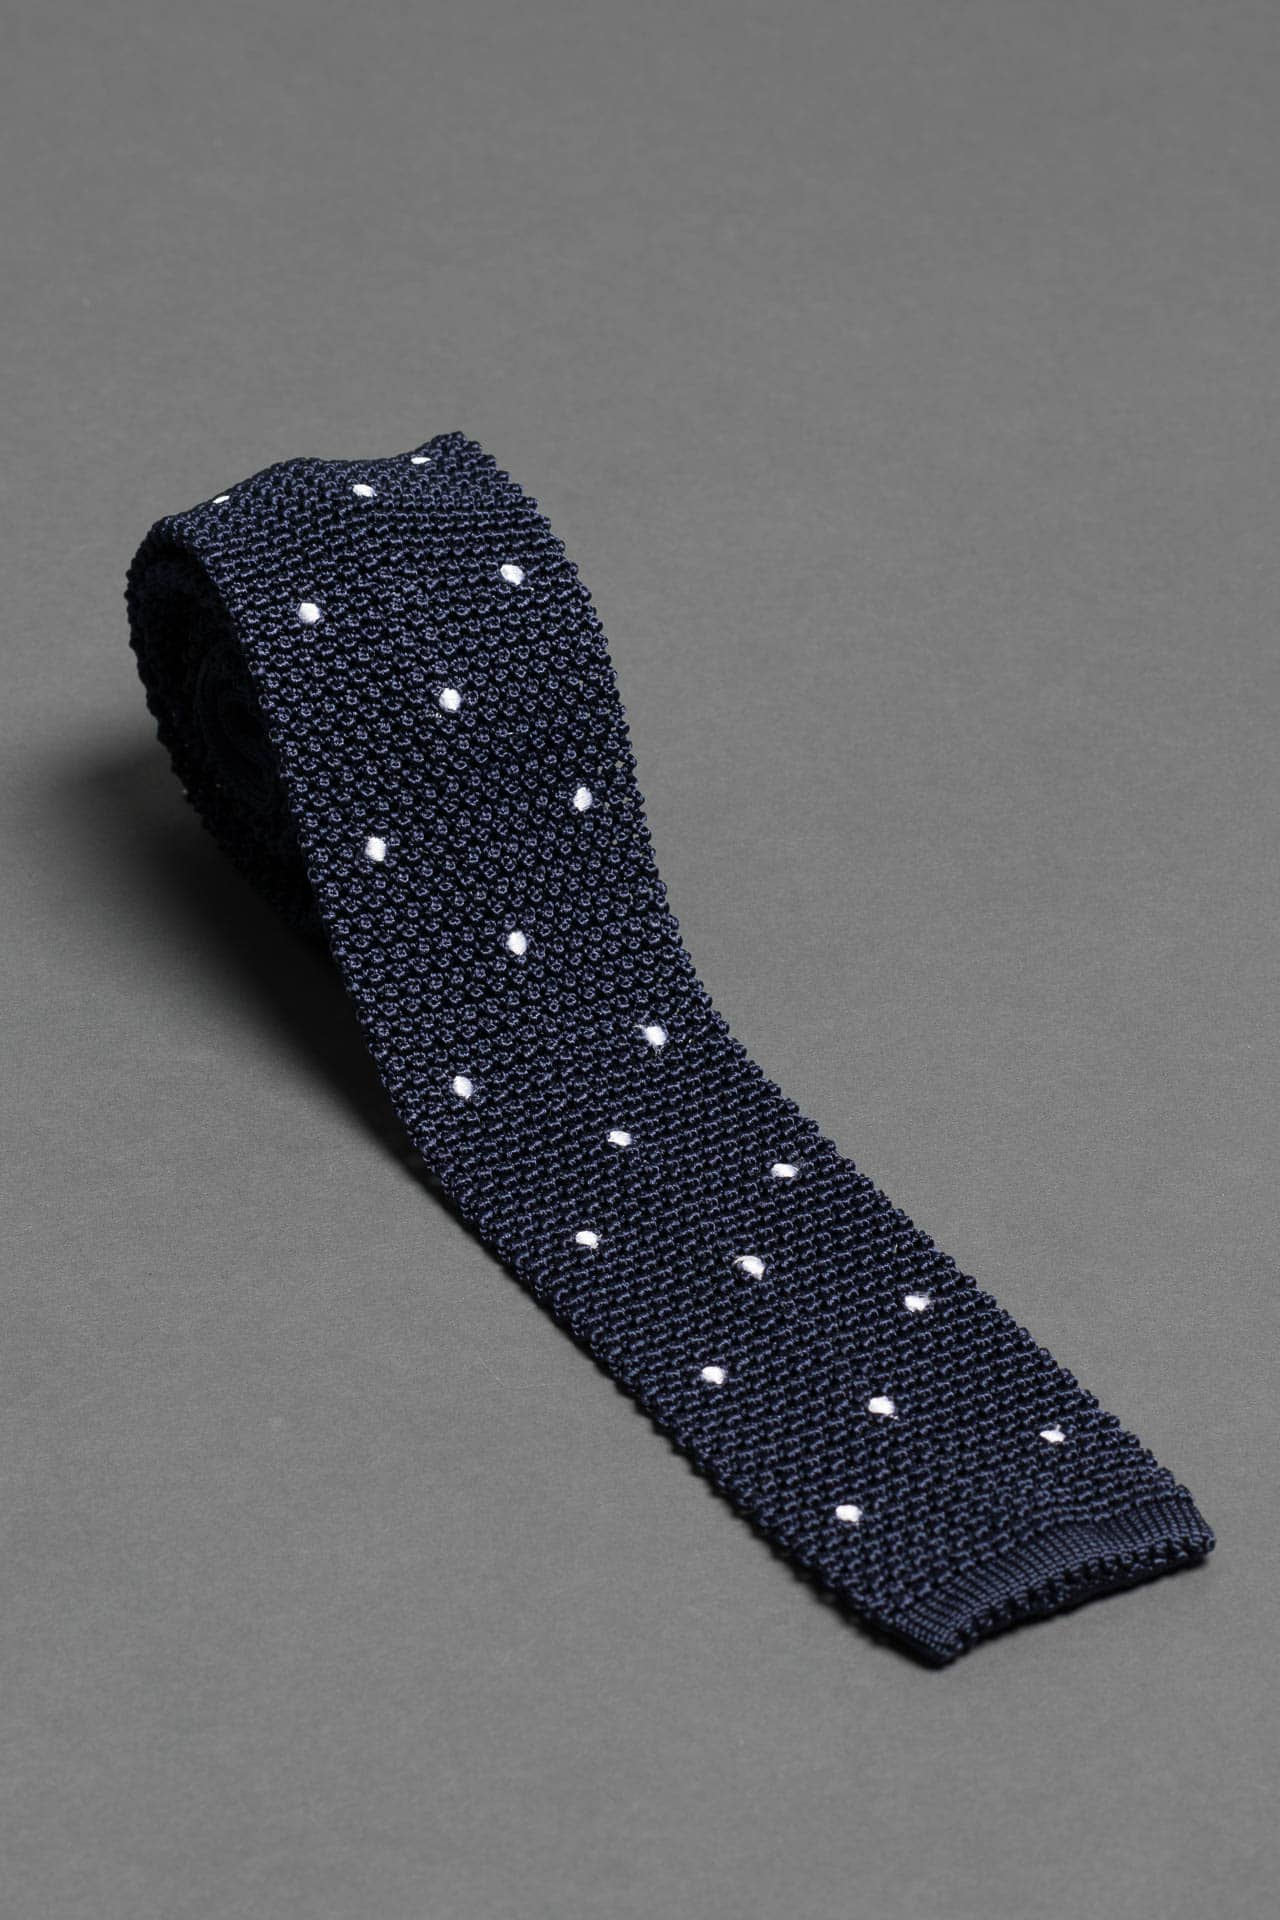 silk-knitted-tie-with-square-tip-navy-blue-with-polka-dots-made-in-italy